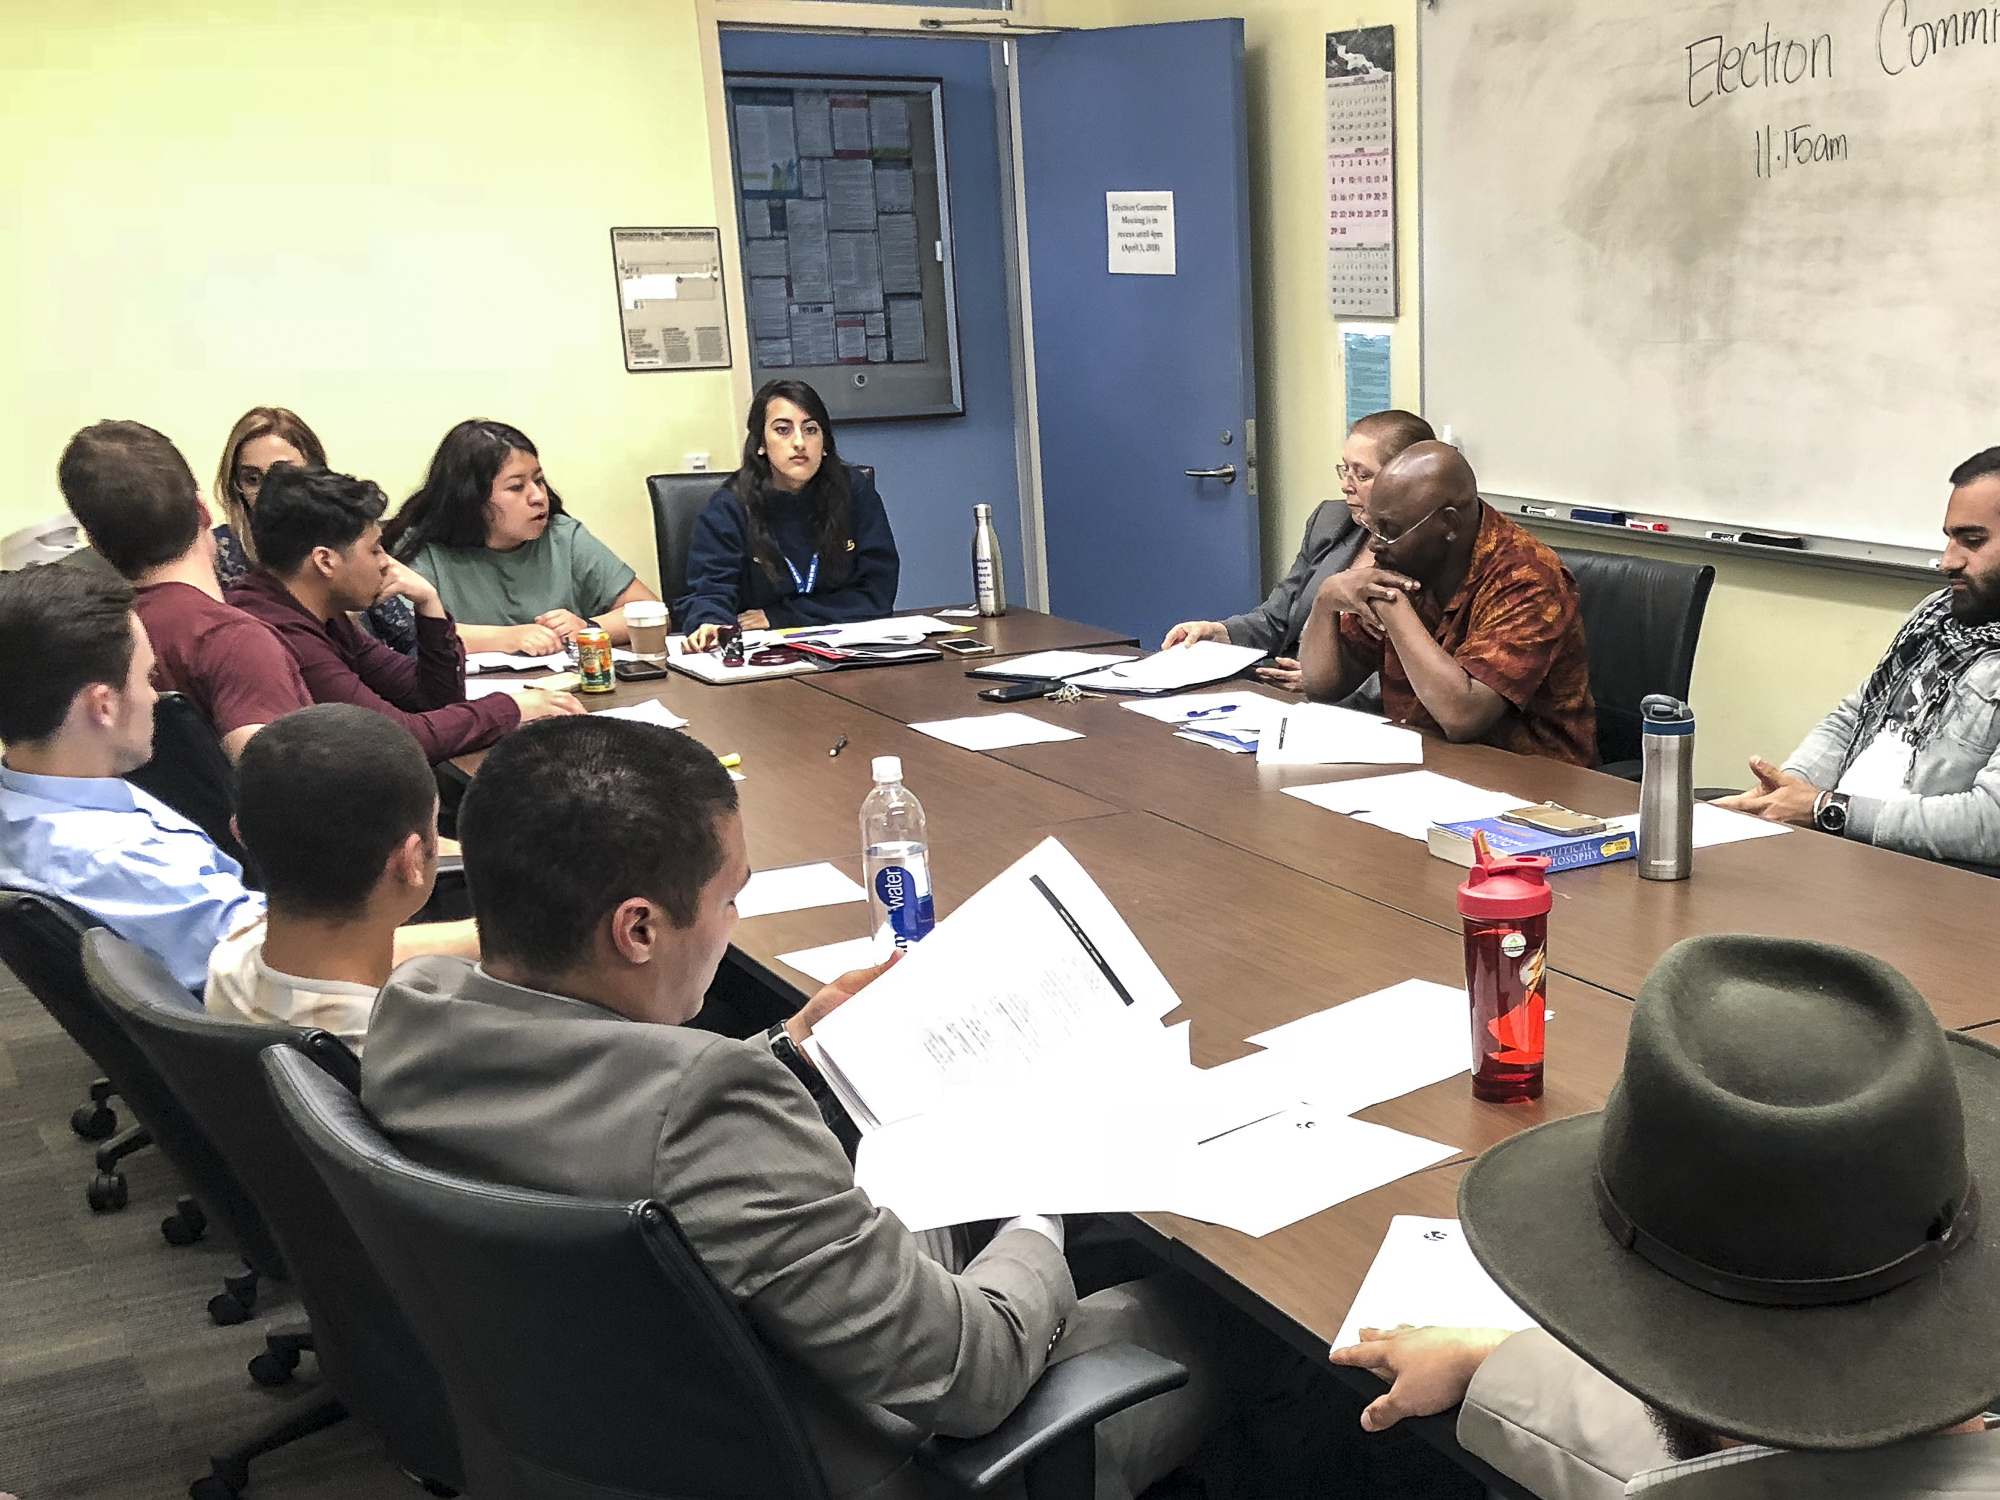 The Election Committee Members discuss a variety of filed violations amongst committee members and Associated Student candidates at the election committee meeting held in the conference room in the Cayton Center on Santa Monica College's main campus in Santa Monica, California on Tuesday, April 3, 2018. (Pictured candidates, bottom left, Ben Kolodny, middle left, Beau Espeso, middle right, Hesham Jarmakani) (Ryanne Mena/Corsair Photo)